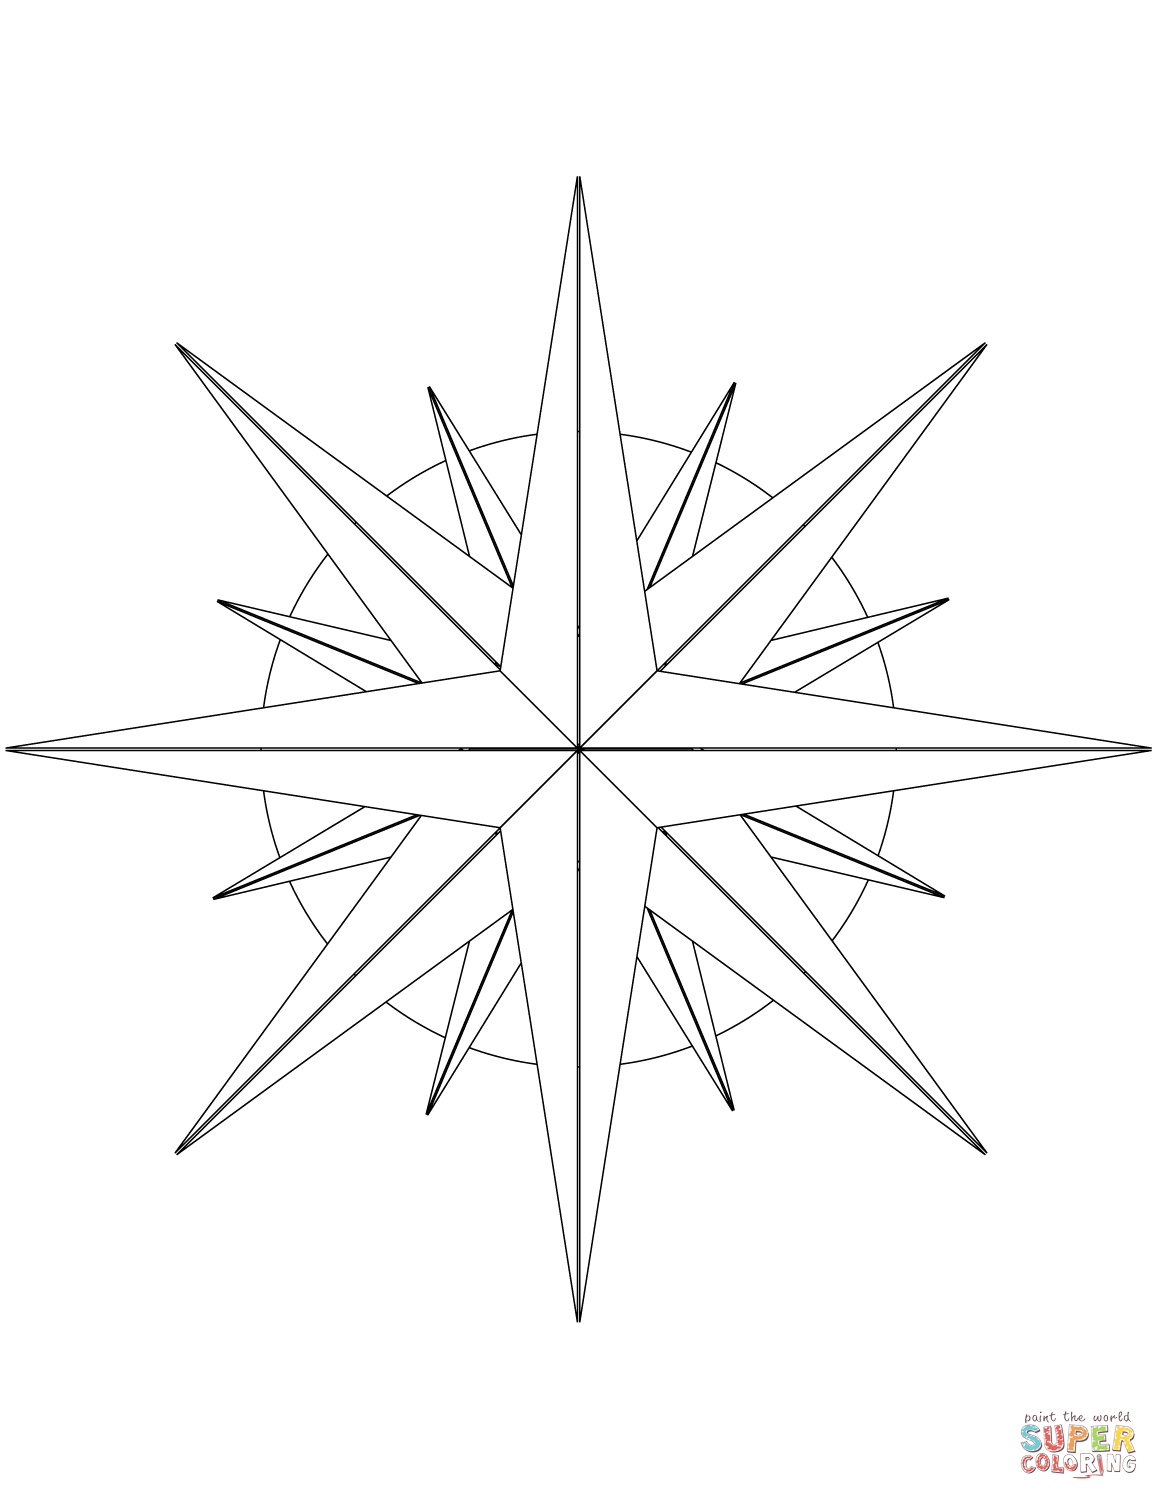 5 Point Star Drawing